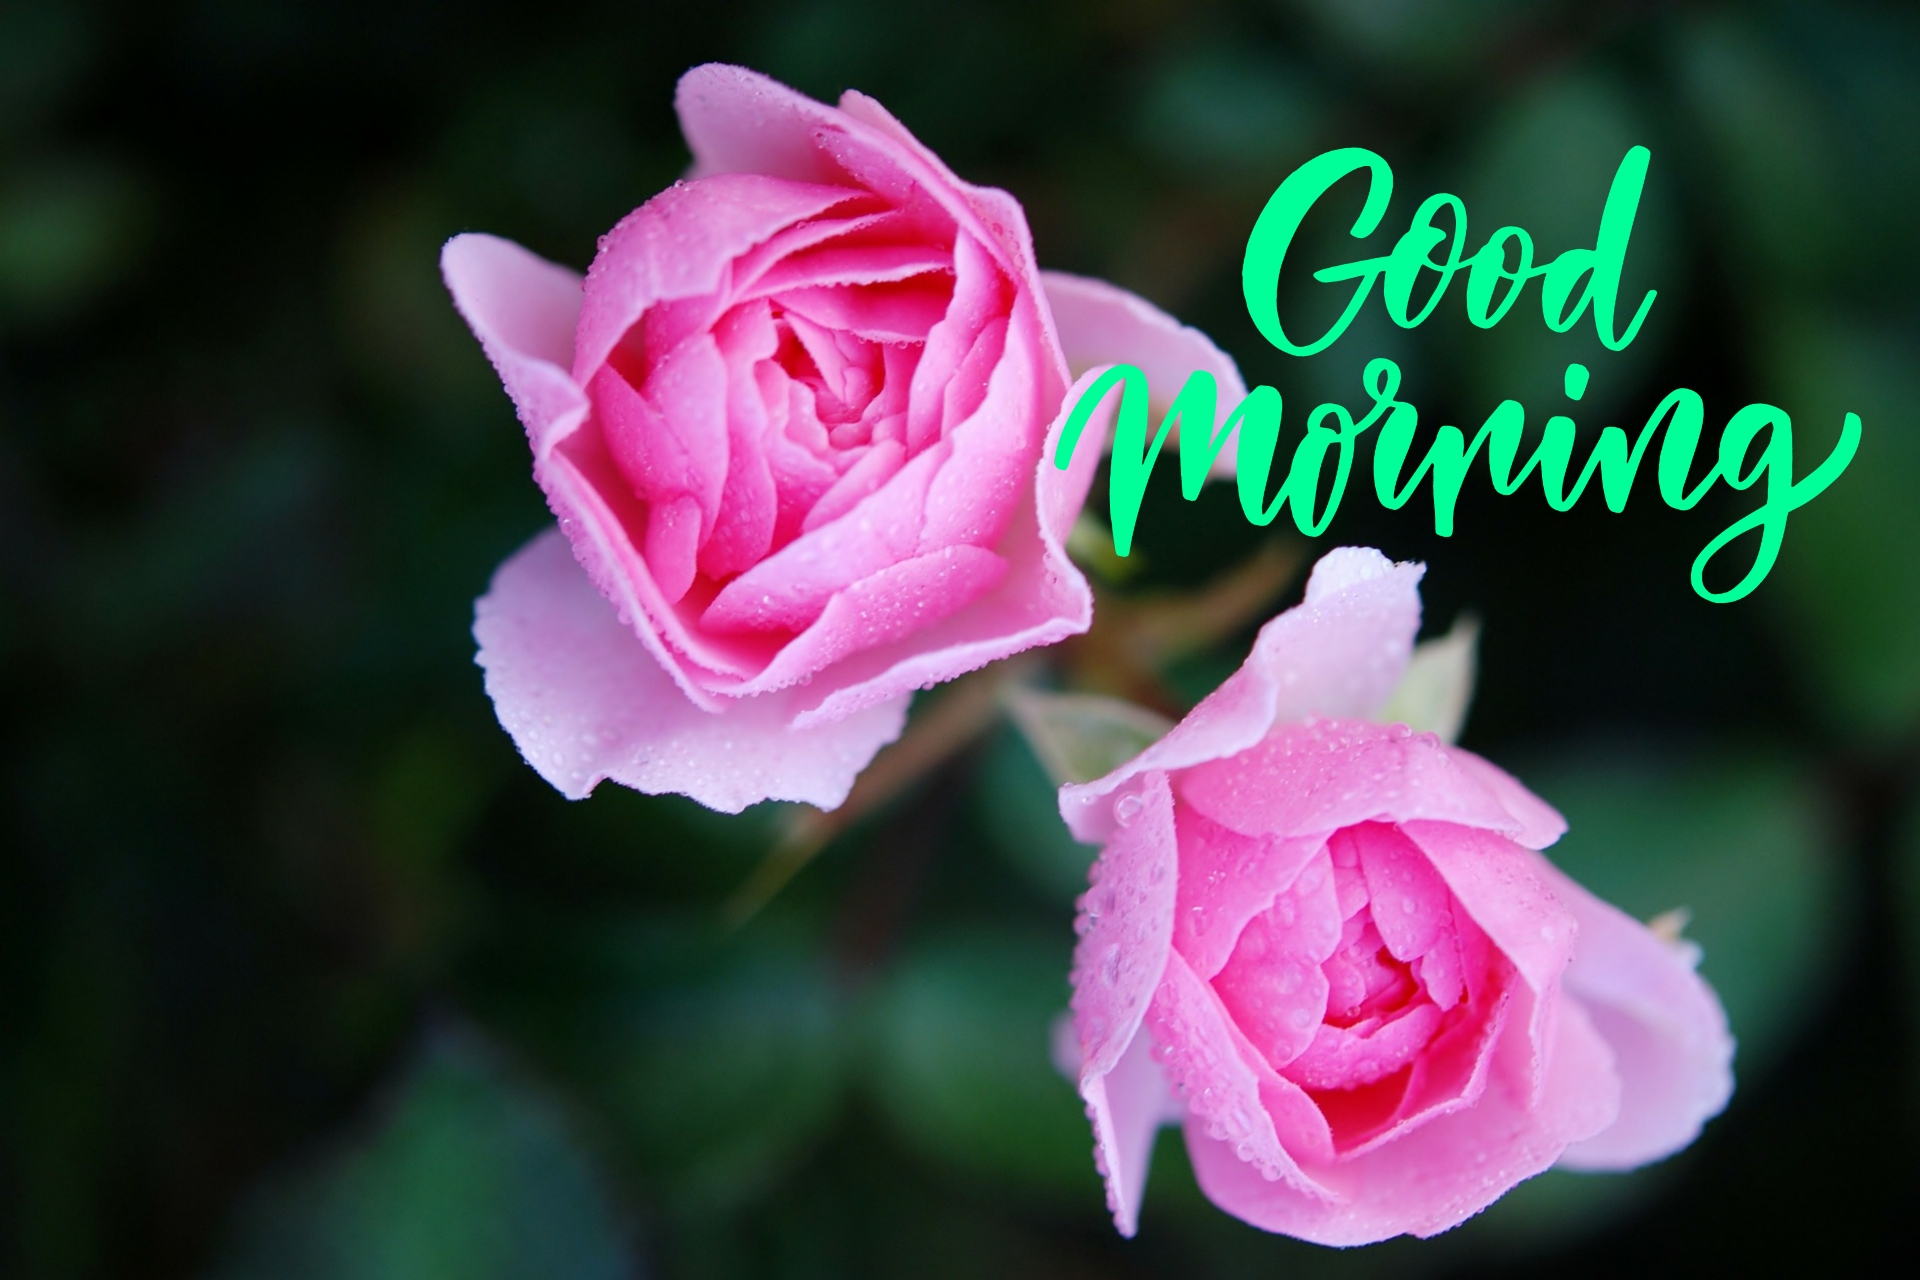 Good Morning Messages With Lord Ganesh Hd Images And